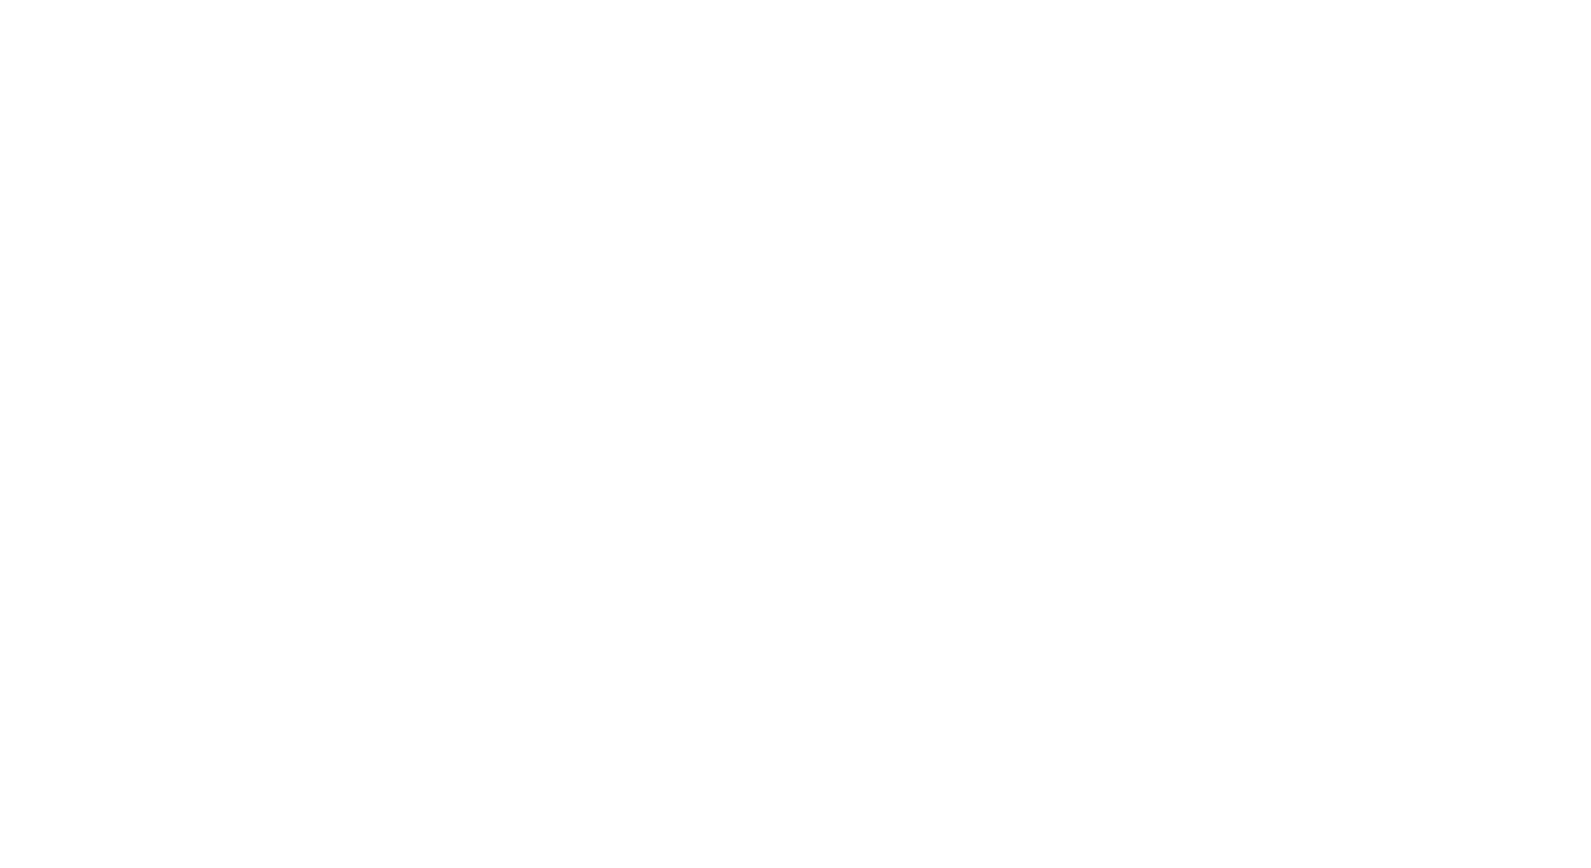 noctura_white.png